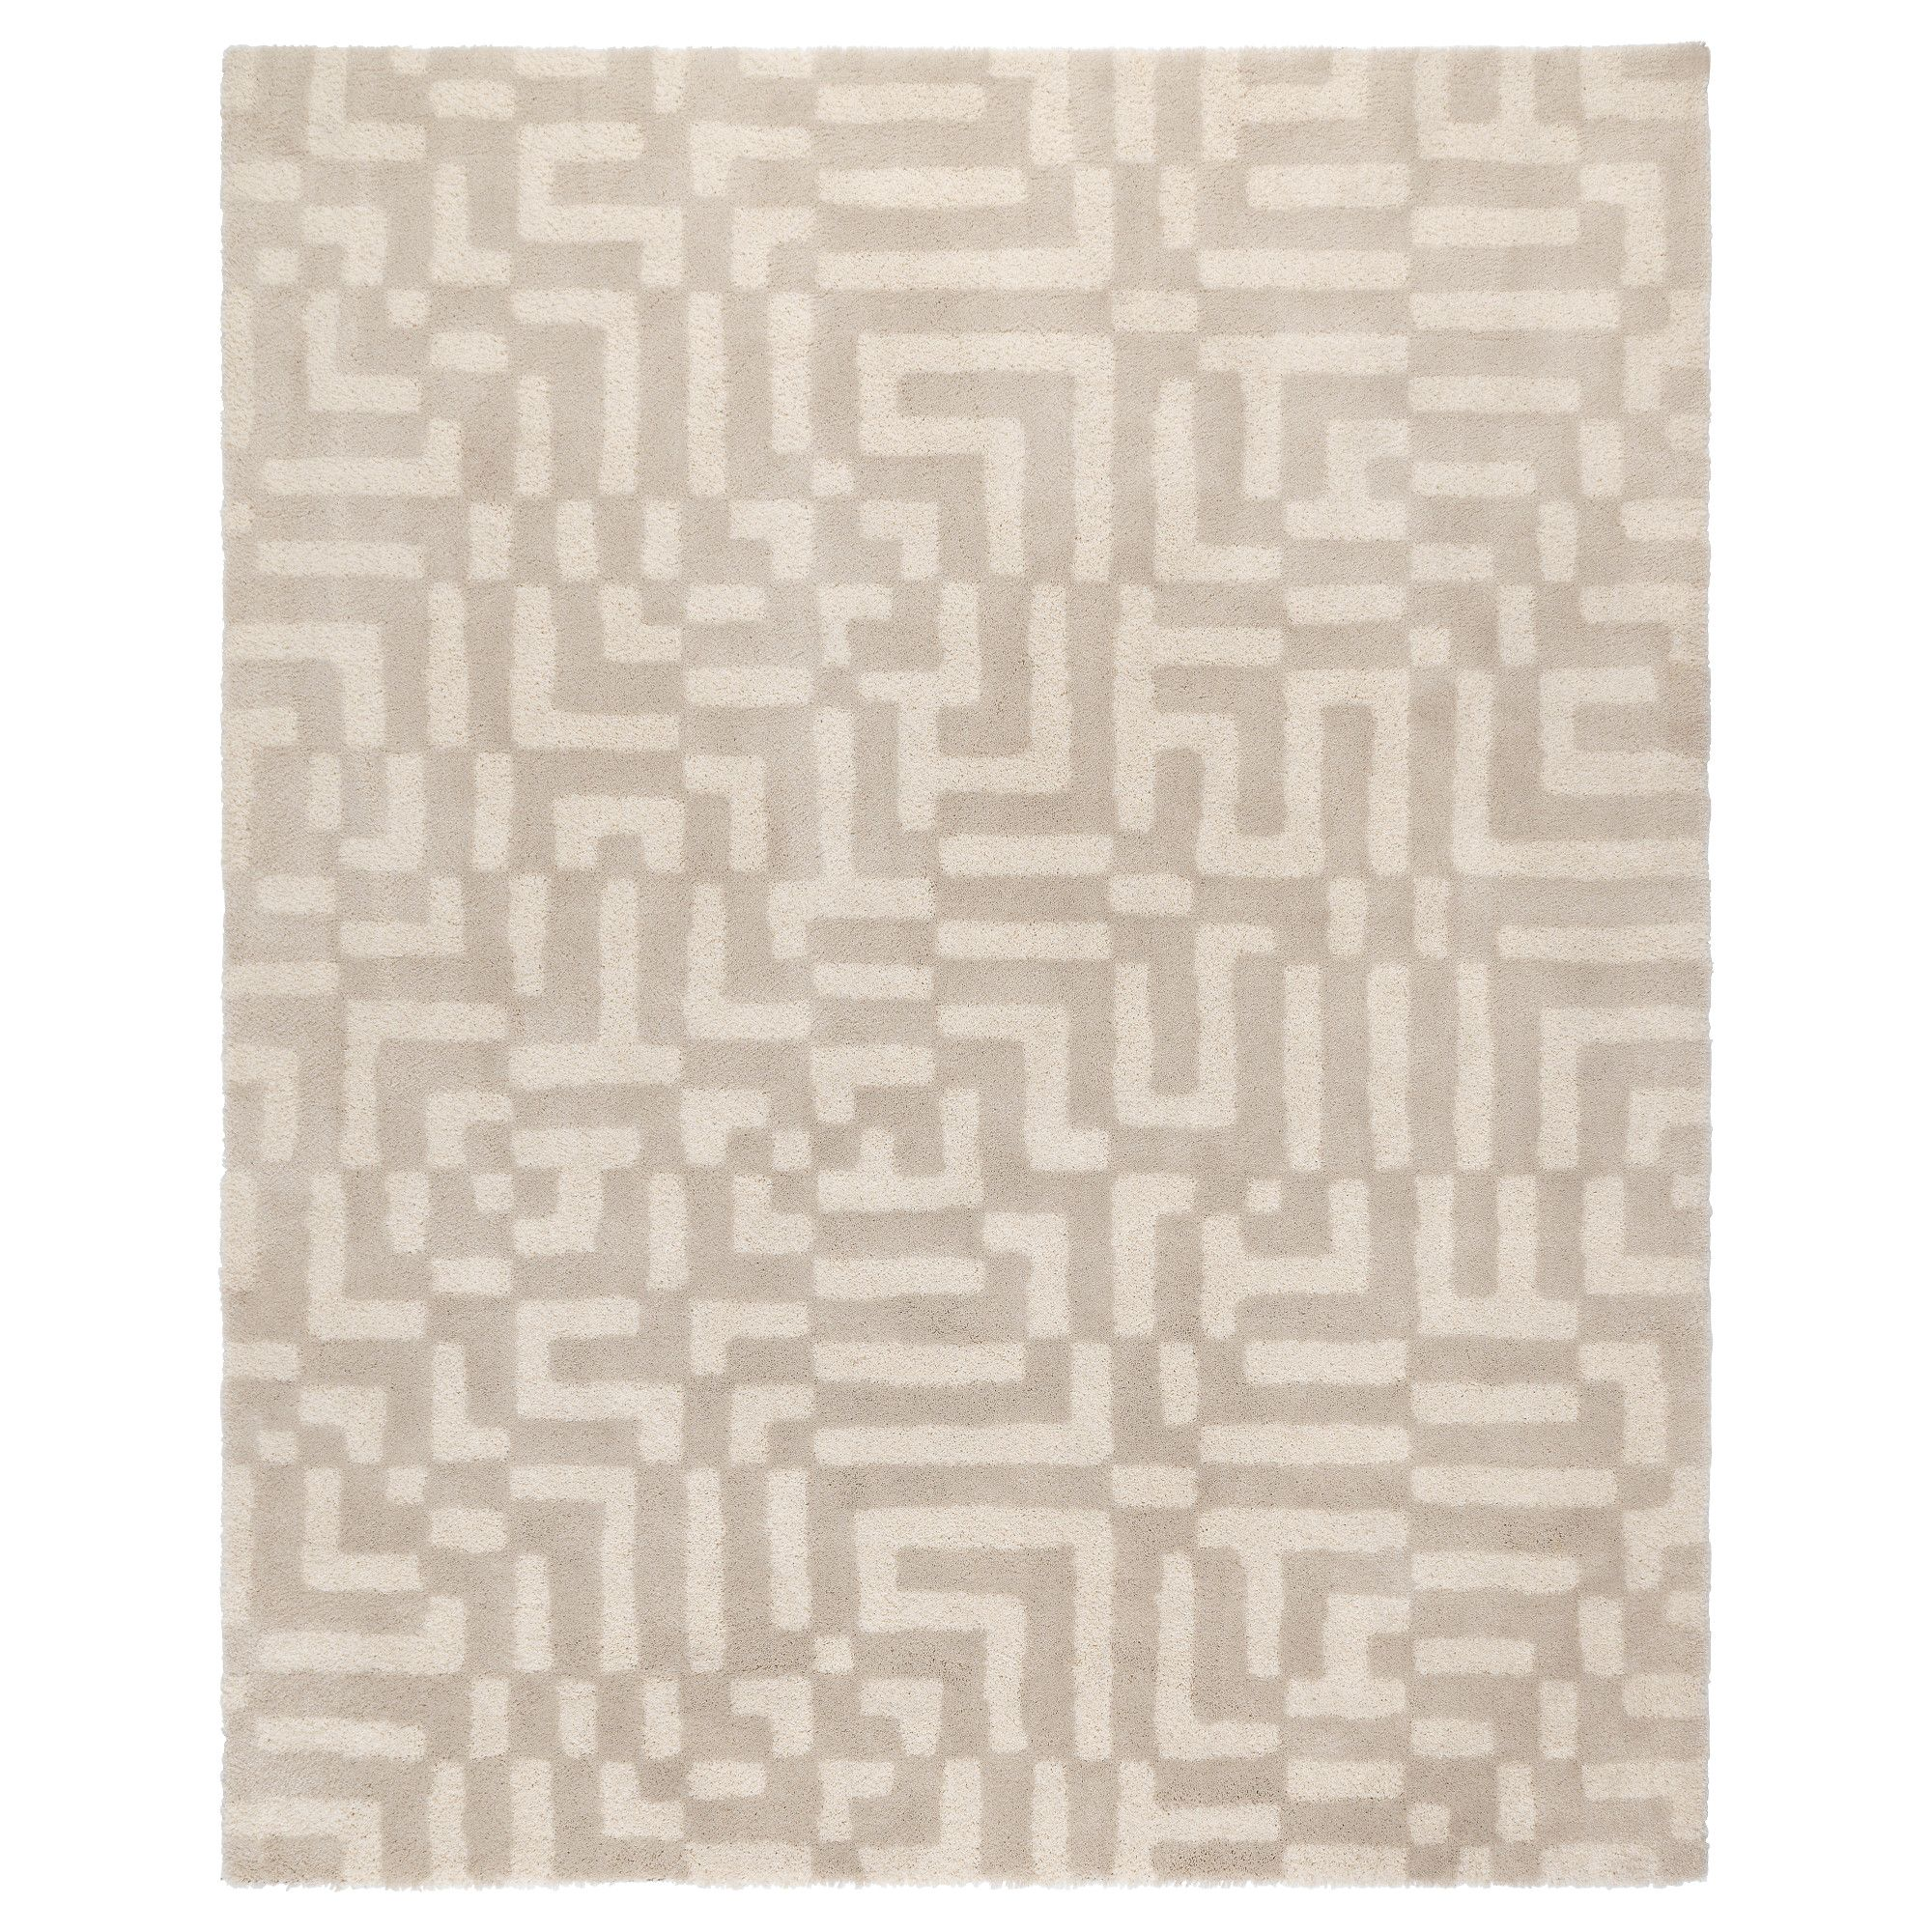 fakse rug, high pile, off-white | oak table, living spaces and condos, Hause deko